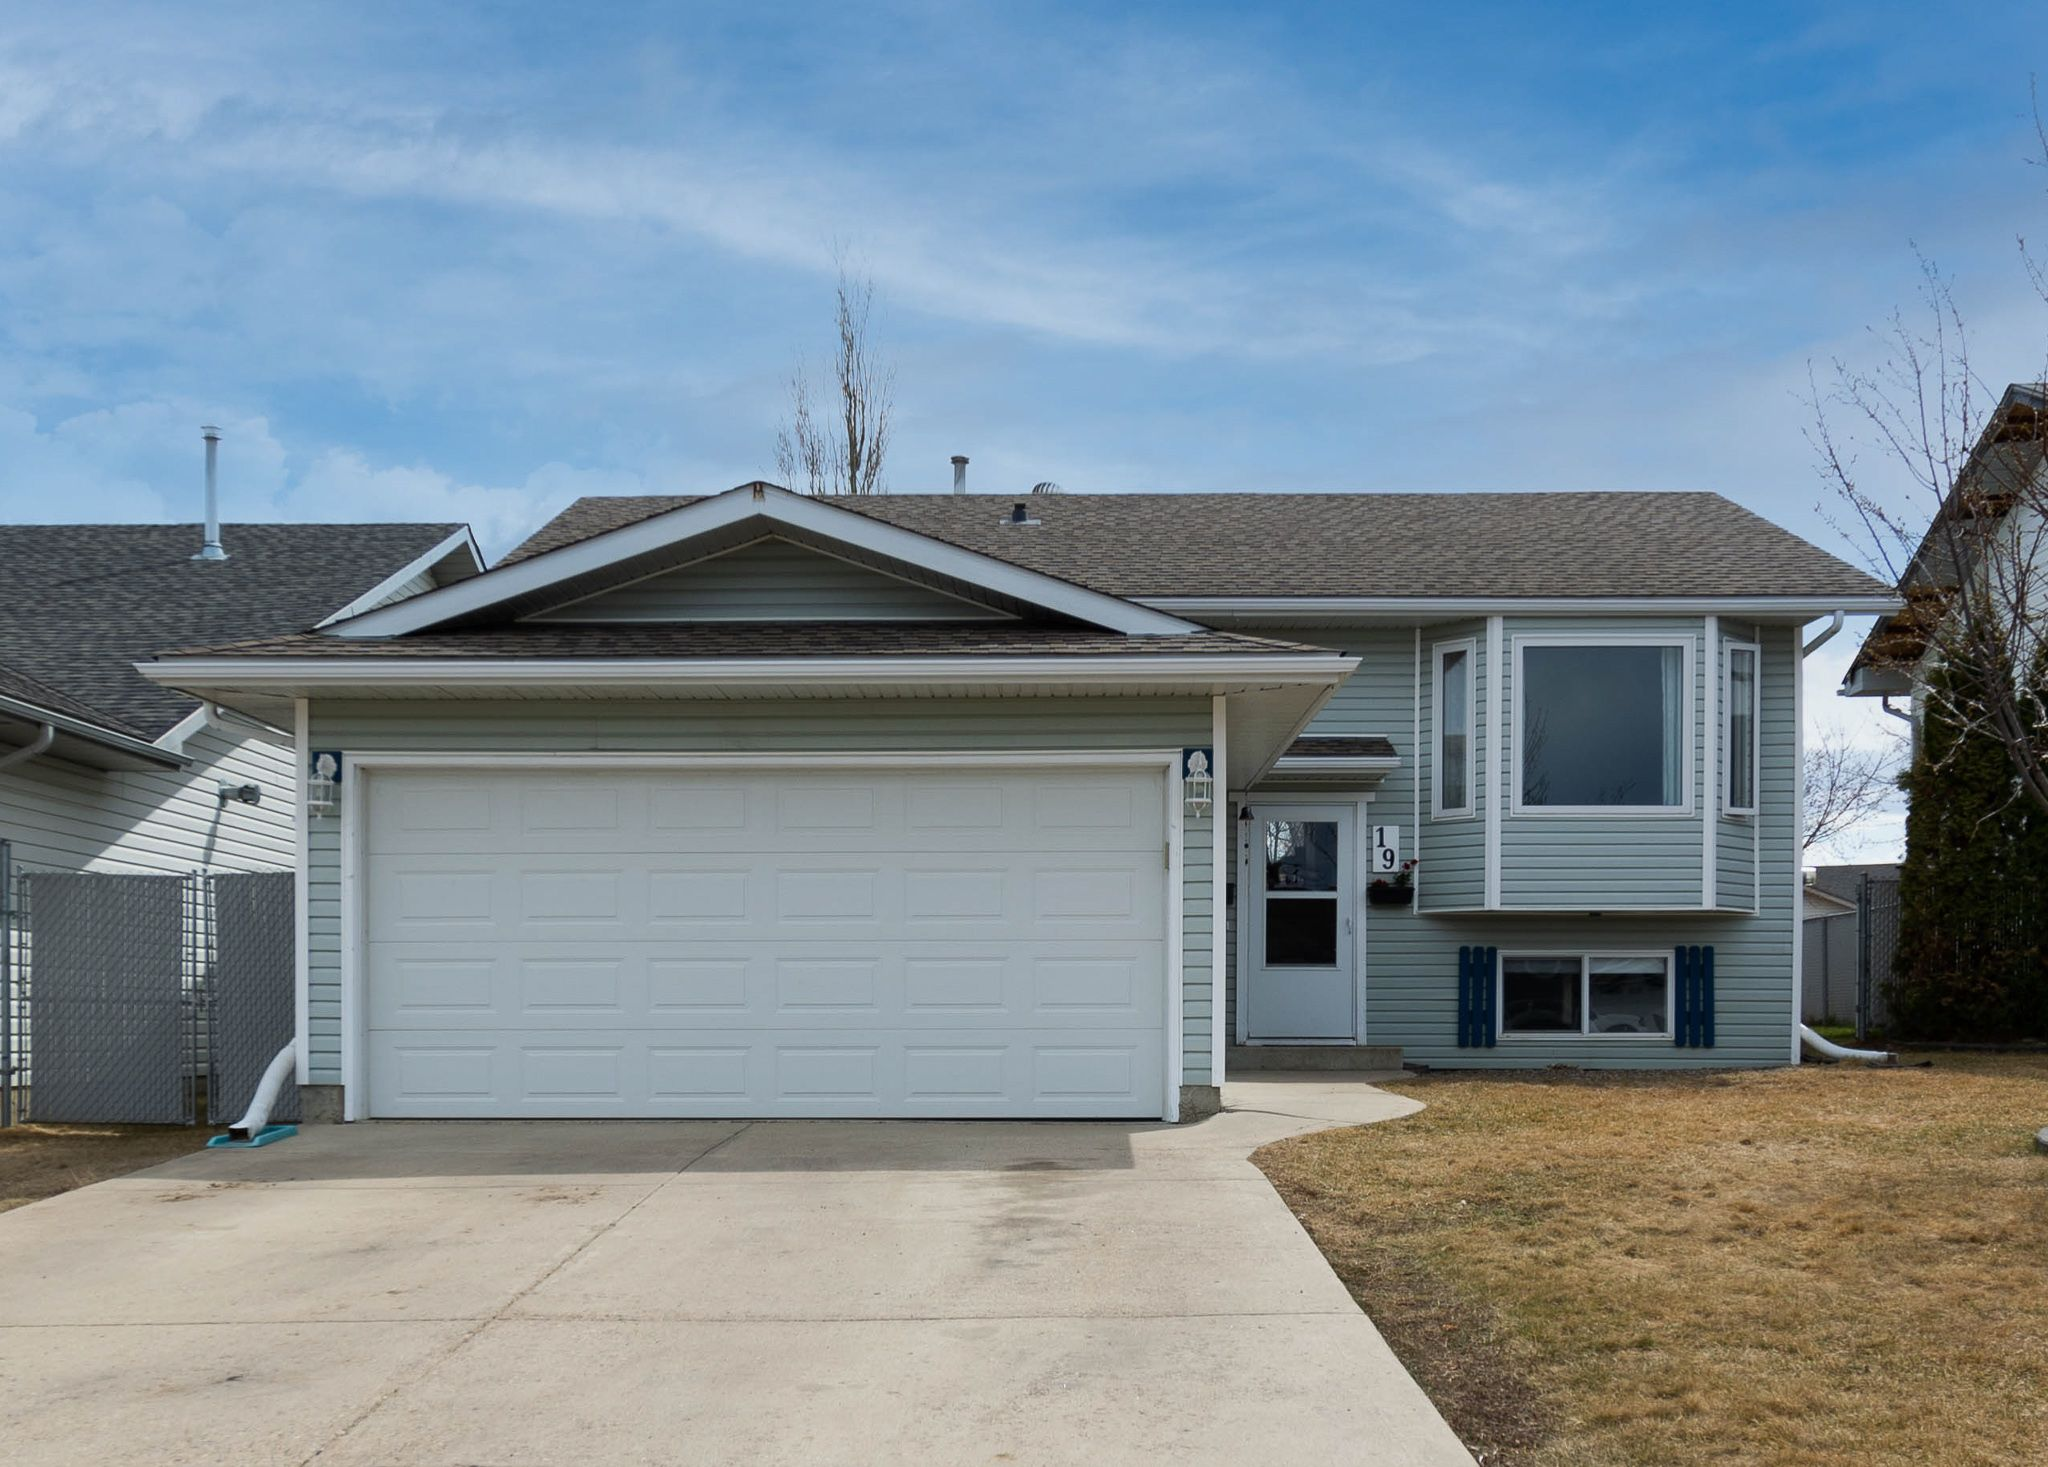 Main Photo: 19 Sammut Place N: Cold Lake House for sale : MLS®# E4246114